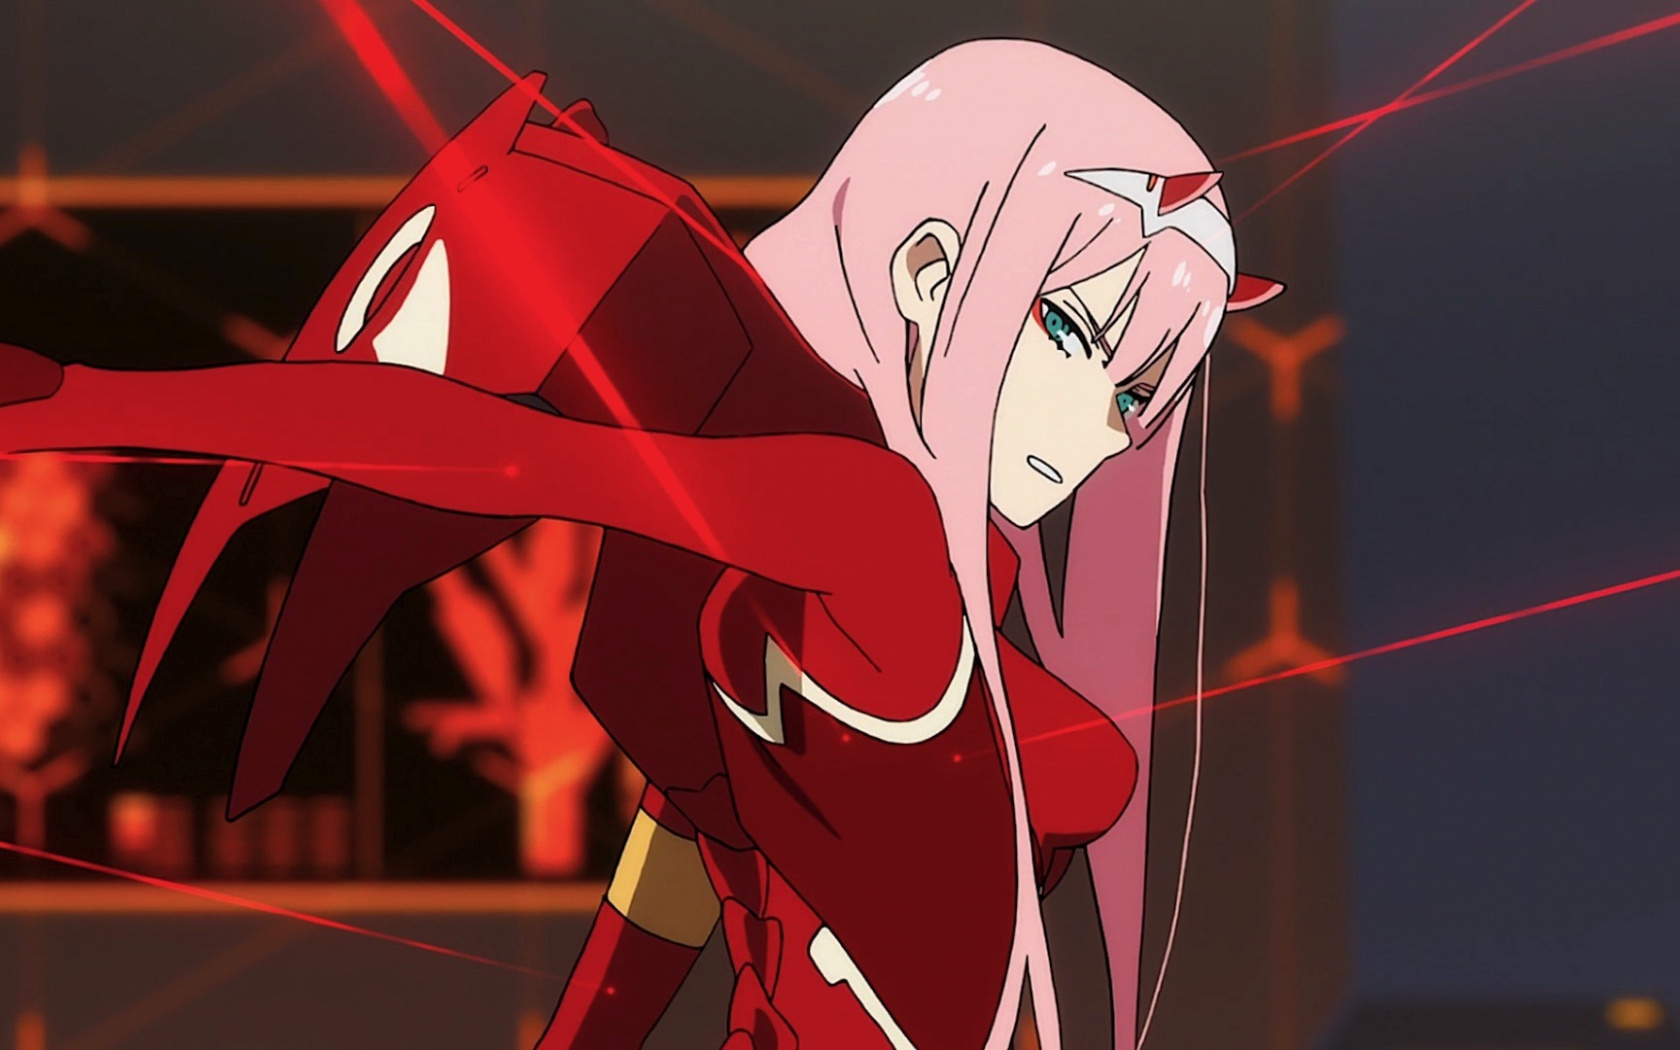 Download 1680x1050 Wallpaper Darling In The Franxx Angry 1680x1050